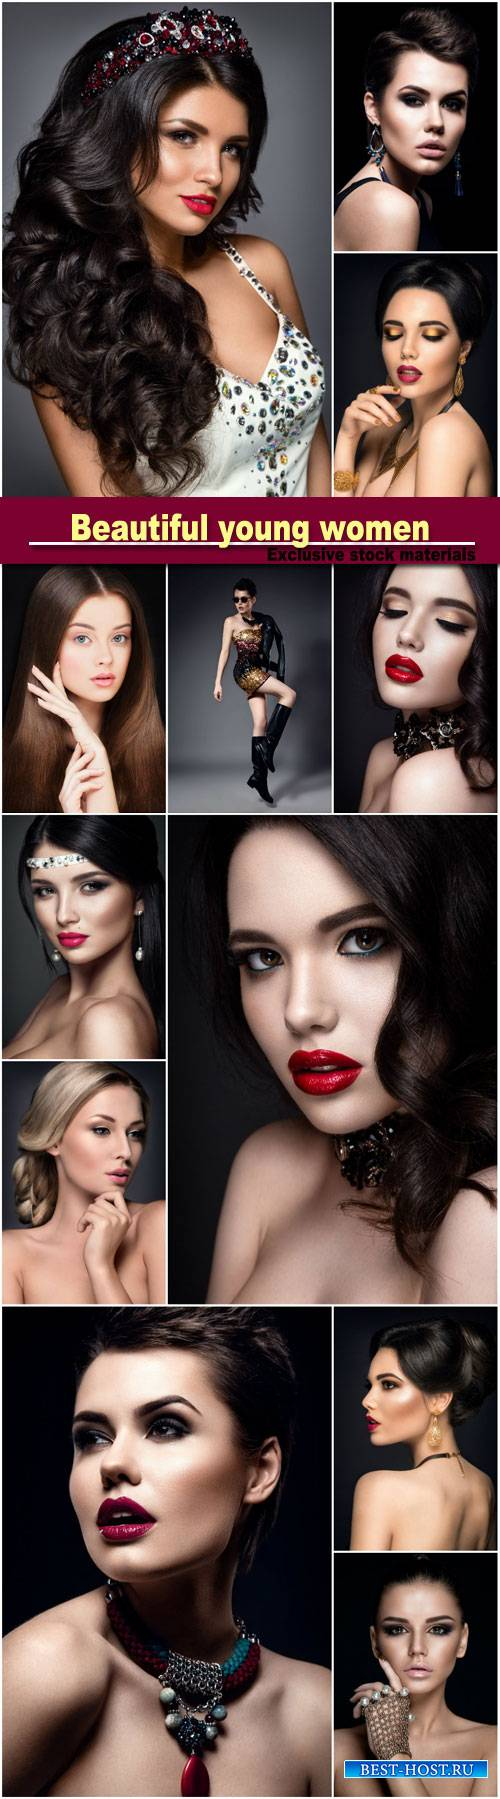 Beautiful young women, stylish make-up, hairstyles